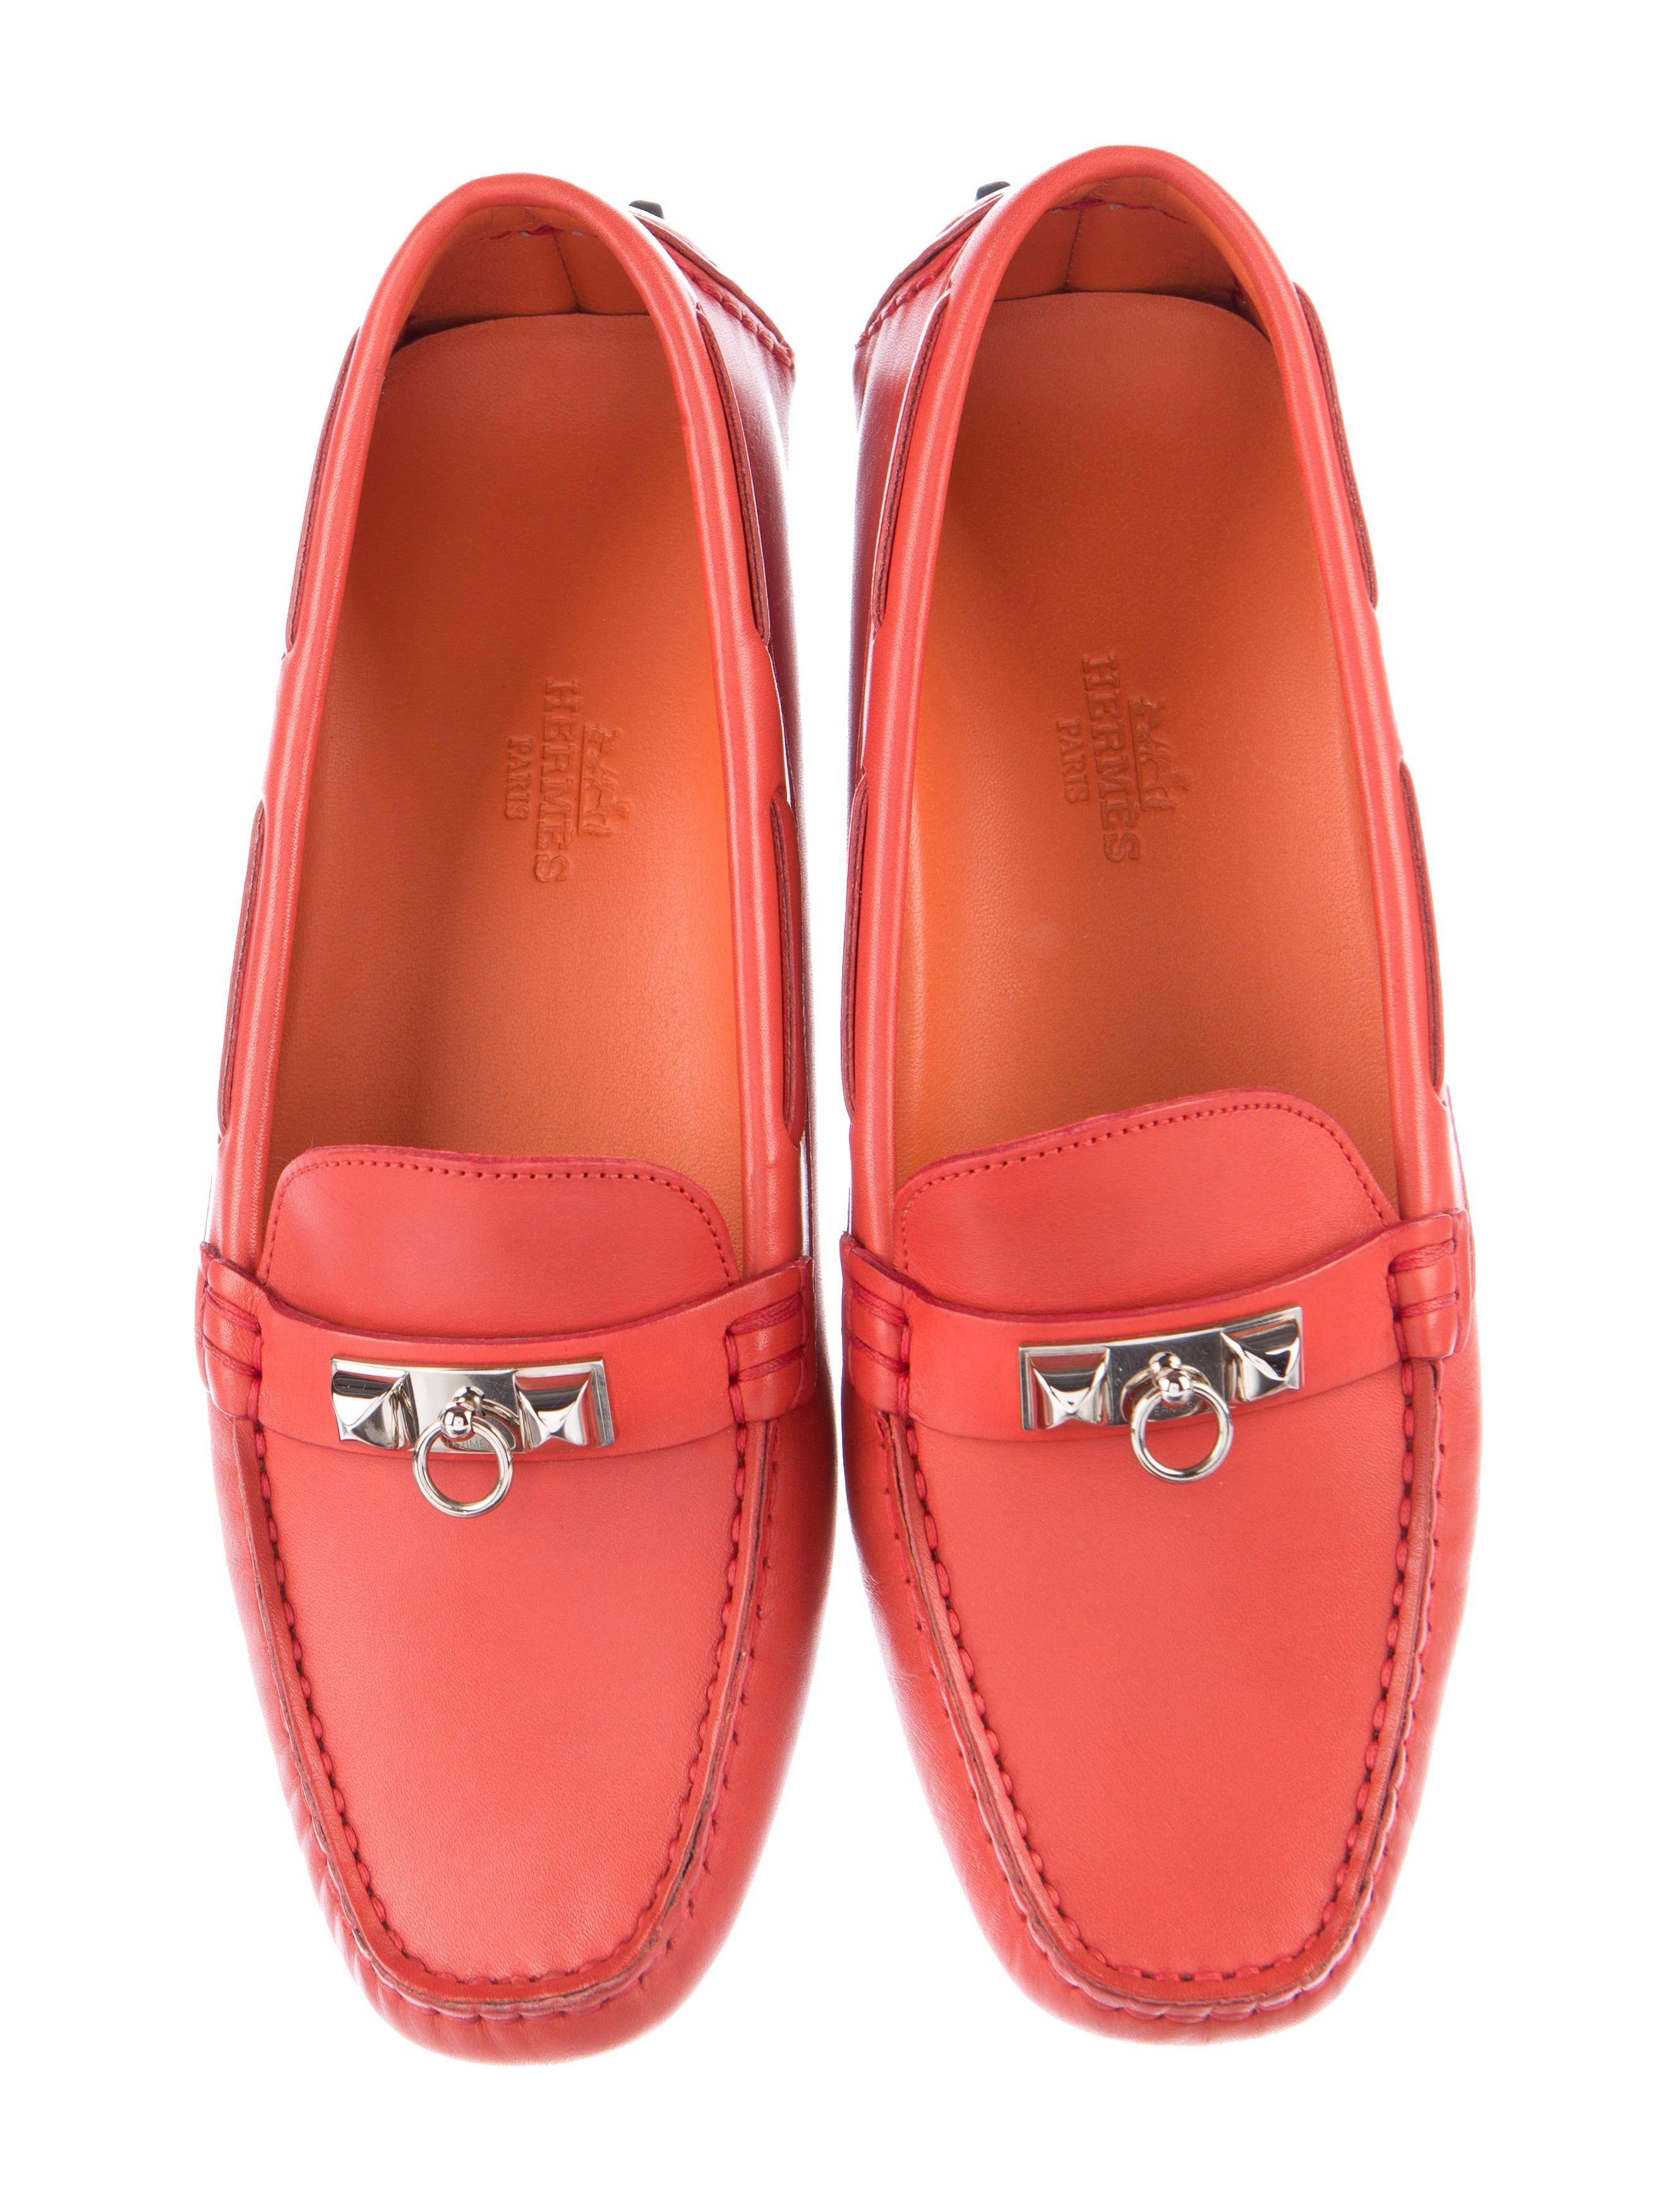 Hermu00e8s Irving Driving Loafers - Shoes - HER89790 | The ...